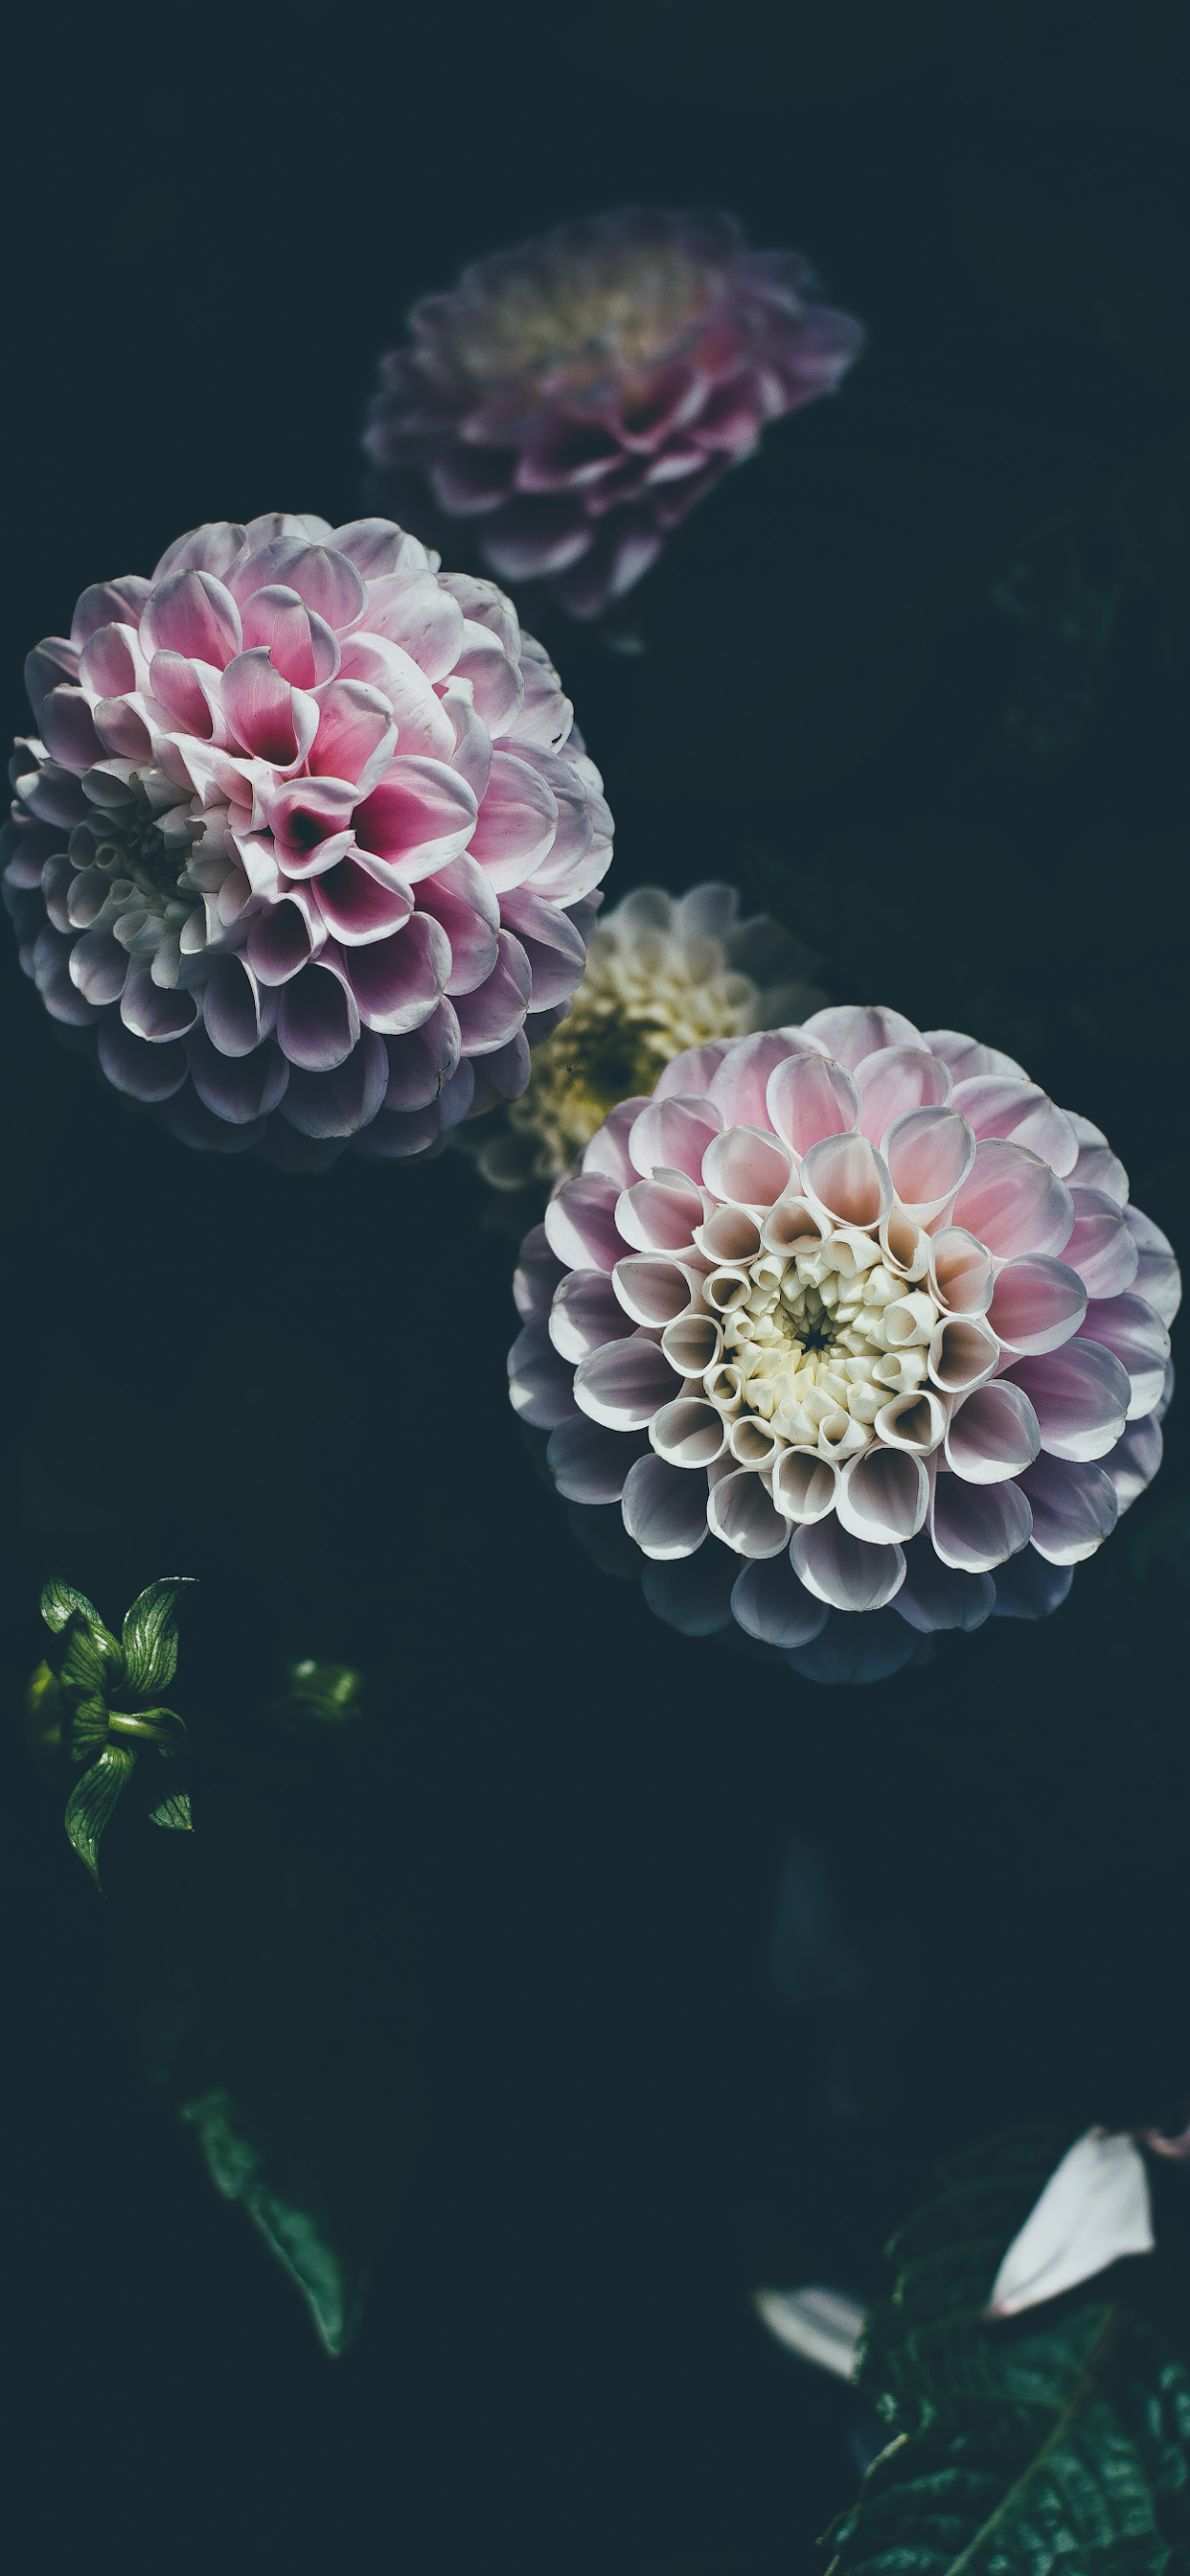 iPhone wallpapers flowers pink dahlia Flowers